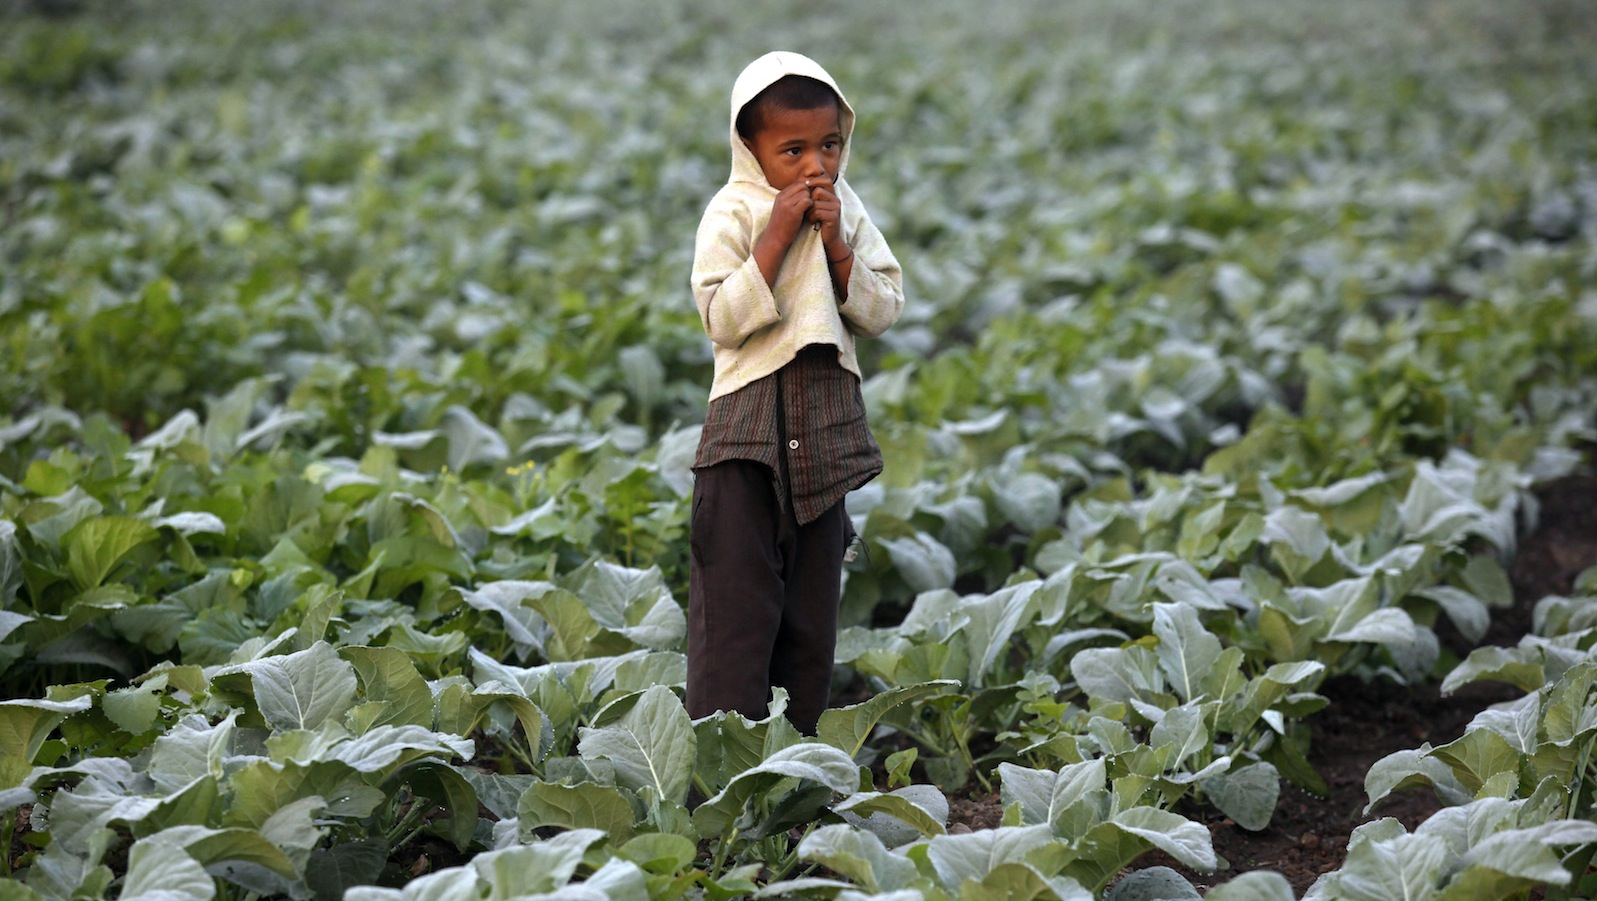 A boy watches his mother (not pictured) as she works in a cauliflower field in Kolkata November 28, 2013. Rural demand and other encouraging signs - a revival in exports and a narrowing of the current account deficit - have given India's policymakers reason to think the worst of the two-year economic slump may be over. Growth slid in the fiscal year to March 2013 to just 5 percent, the lowest pace since 2002/03.